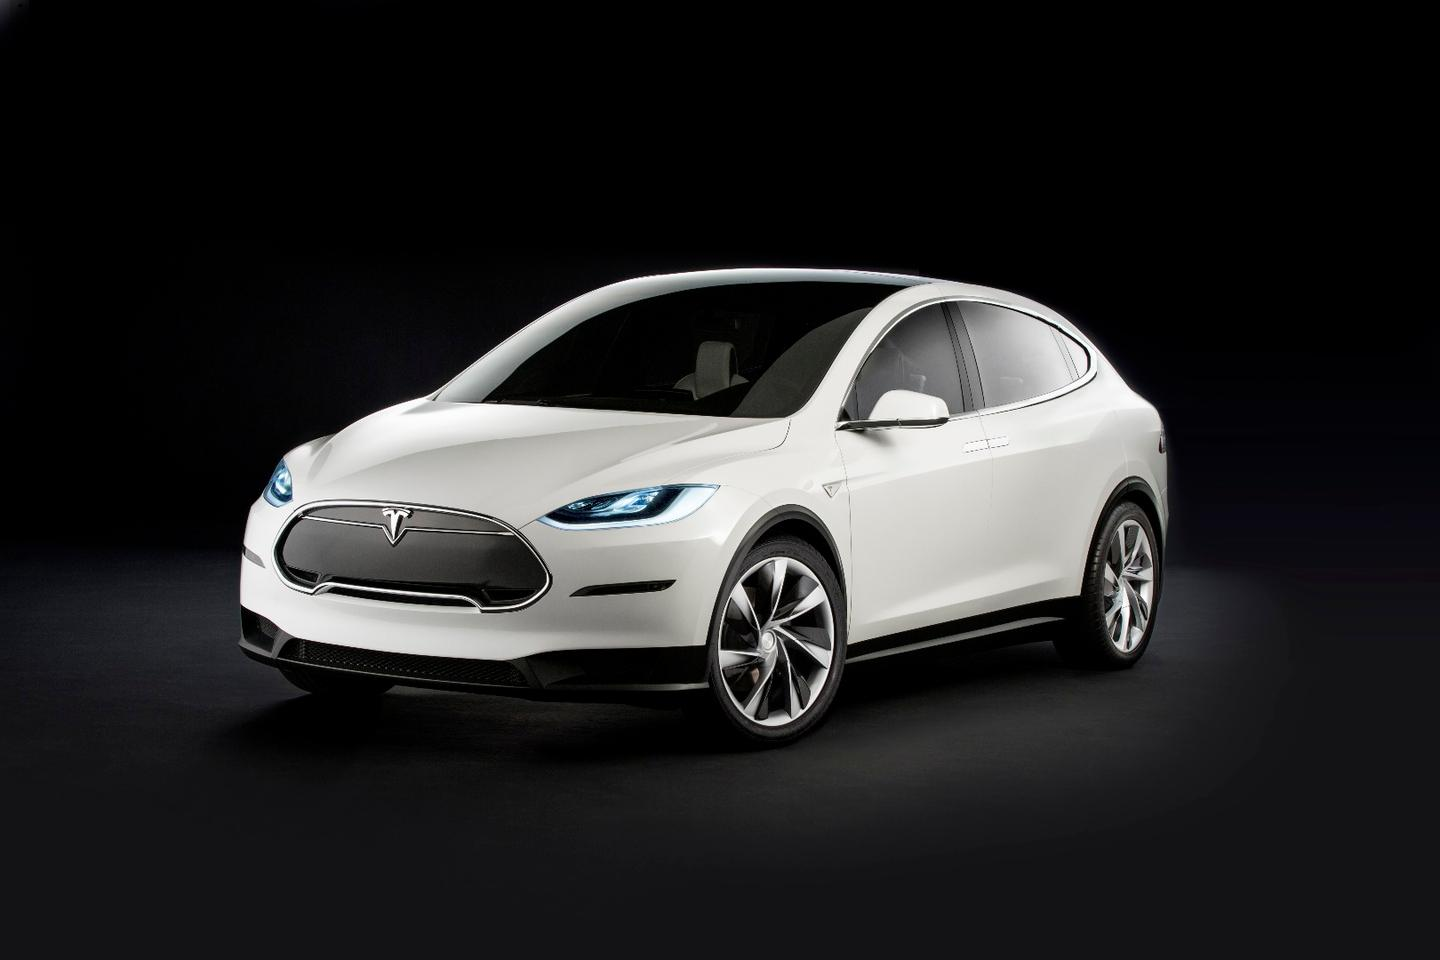 Tesla will offer two different drivetrains on the Model X, including a P90D with Ludicrous mode